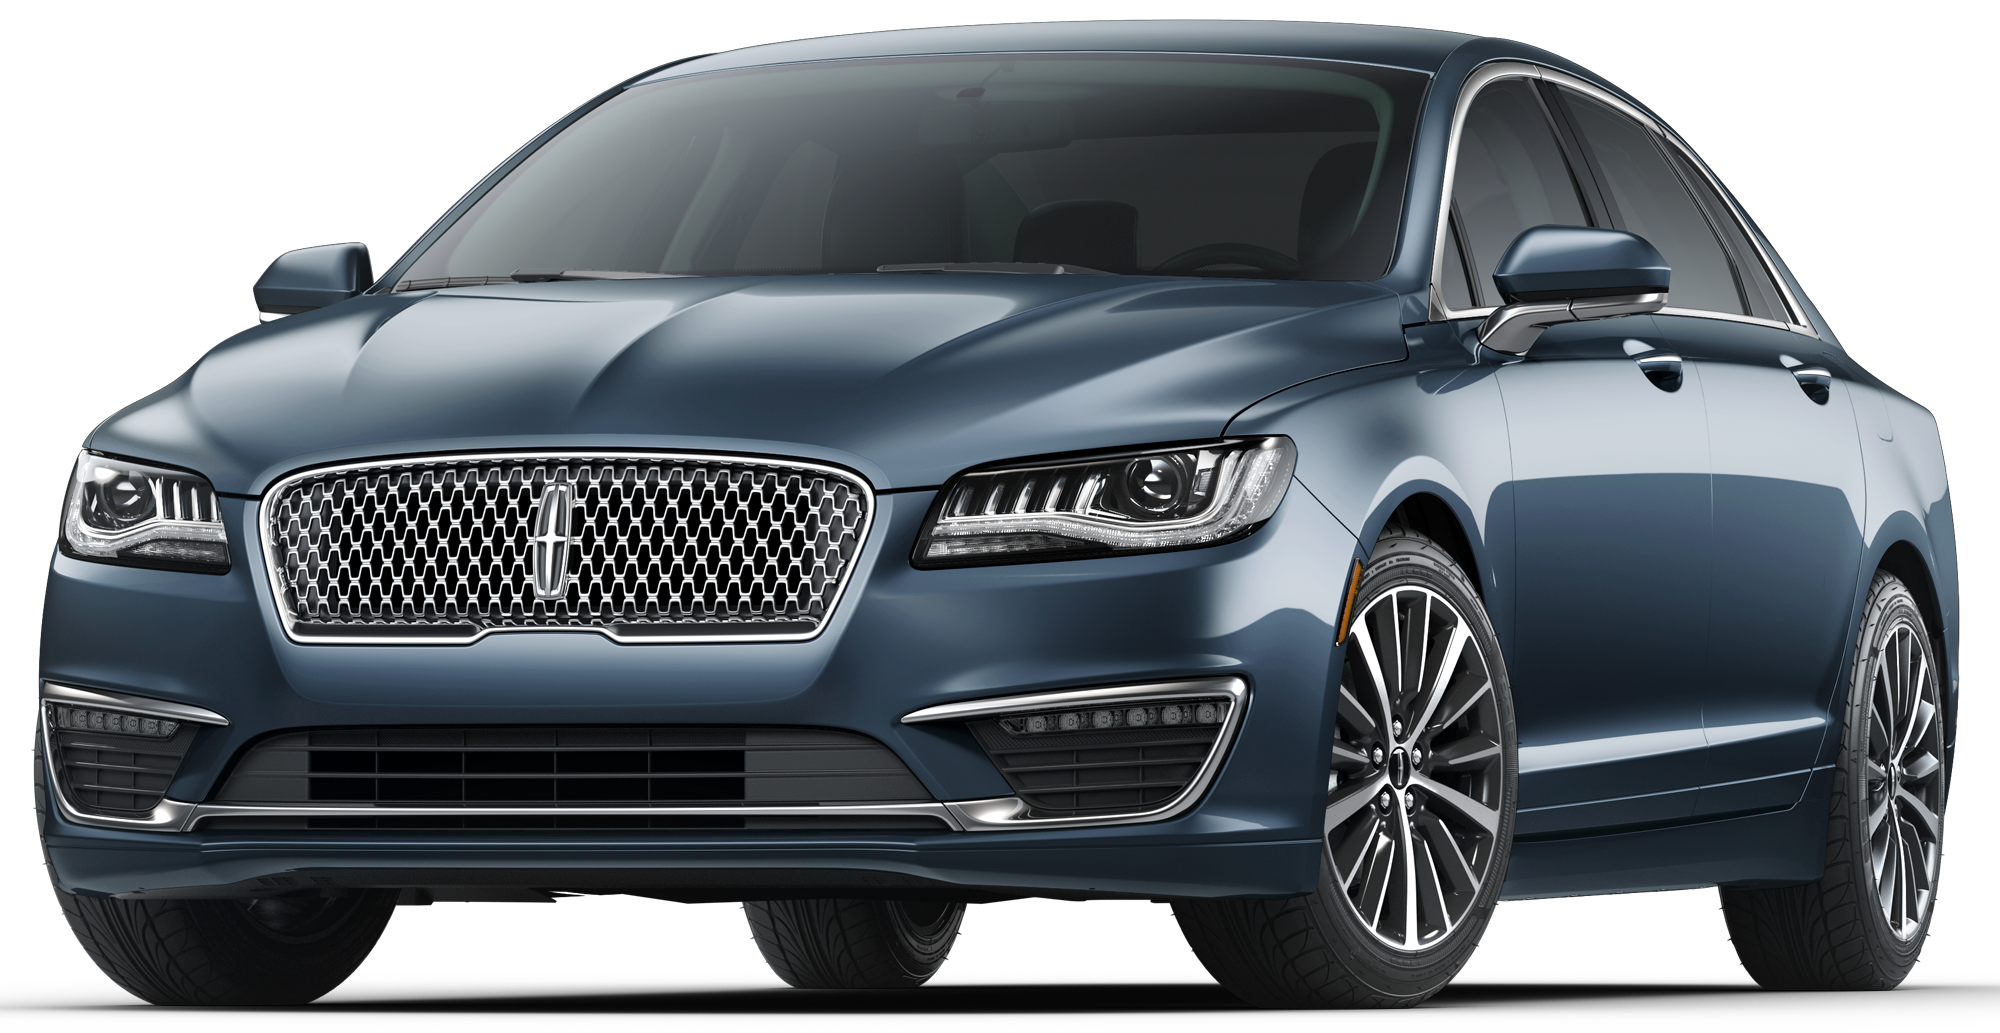 Lincoln Incentives Rebates Specials In Norwood Ma Lincoln